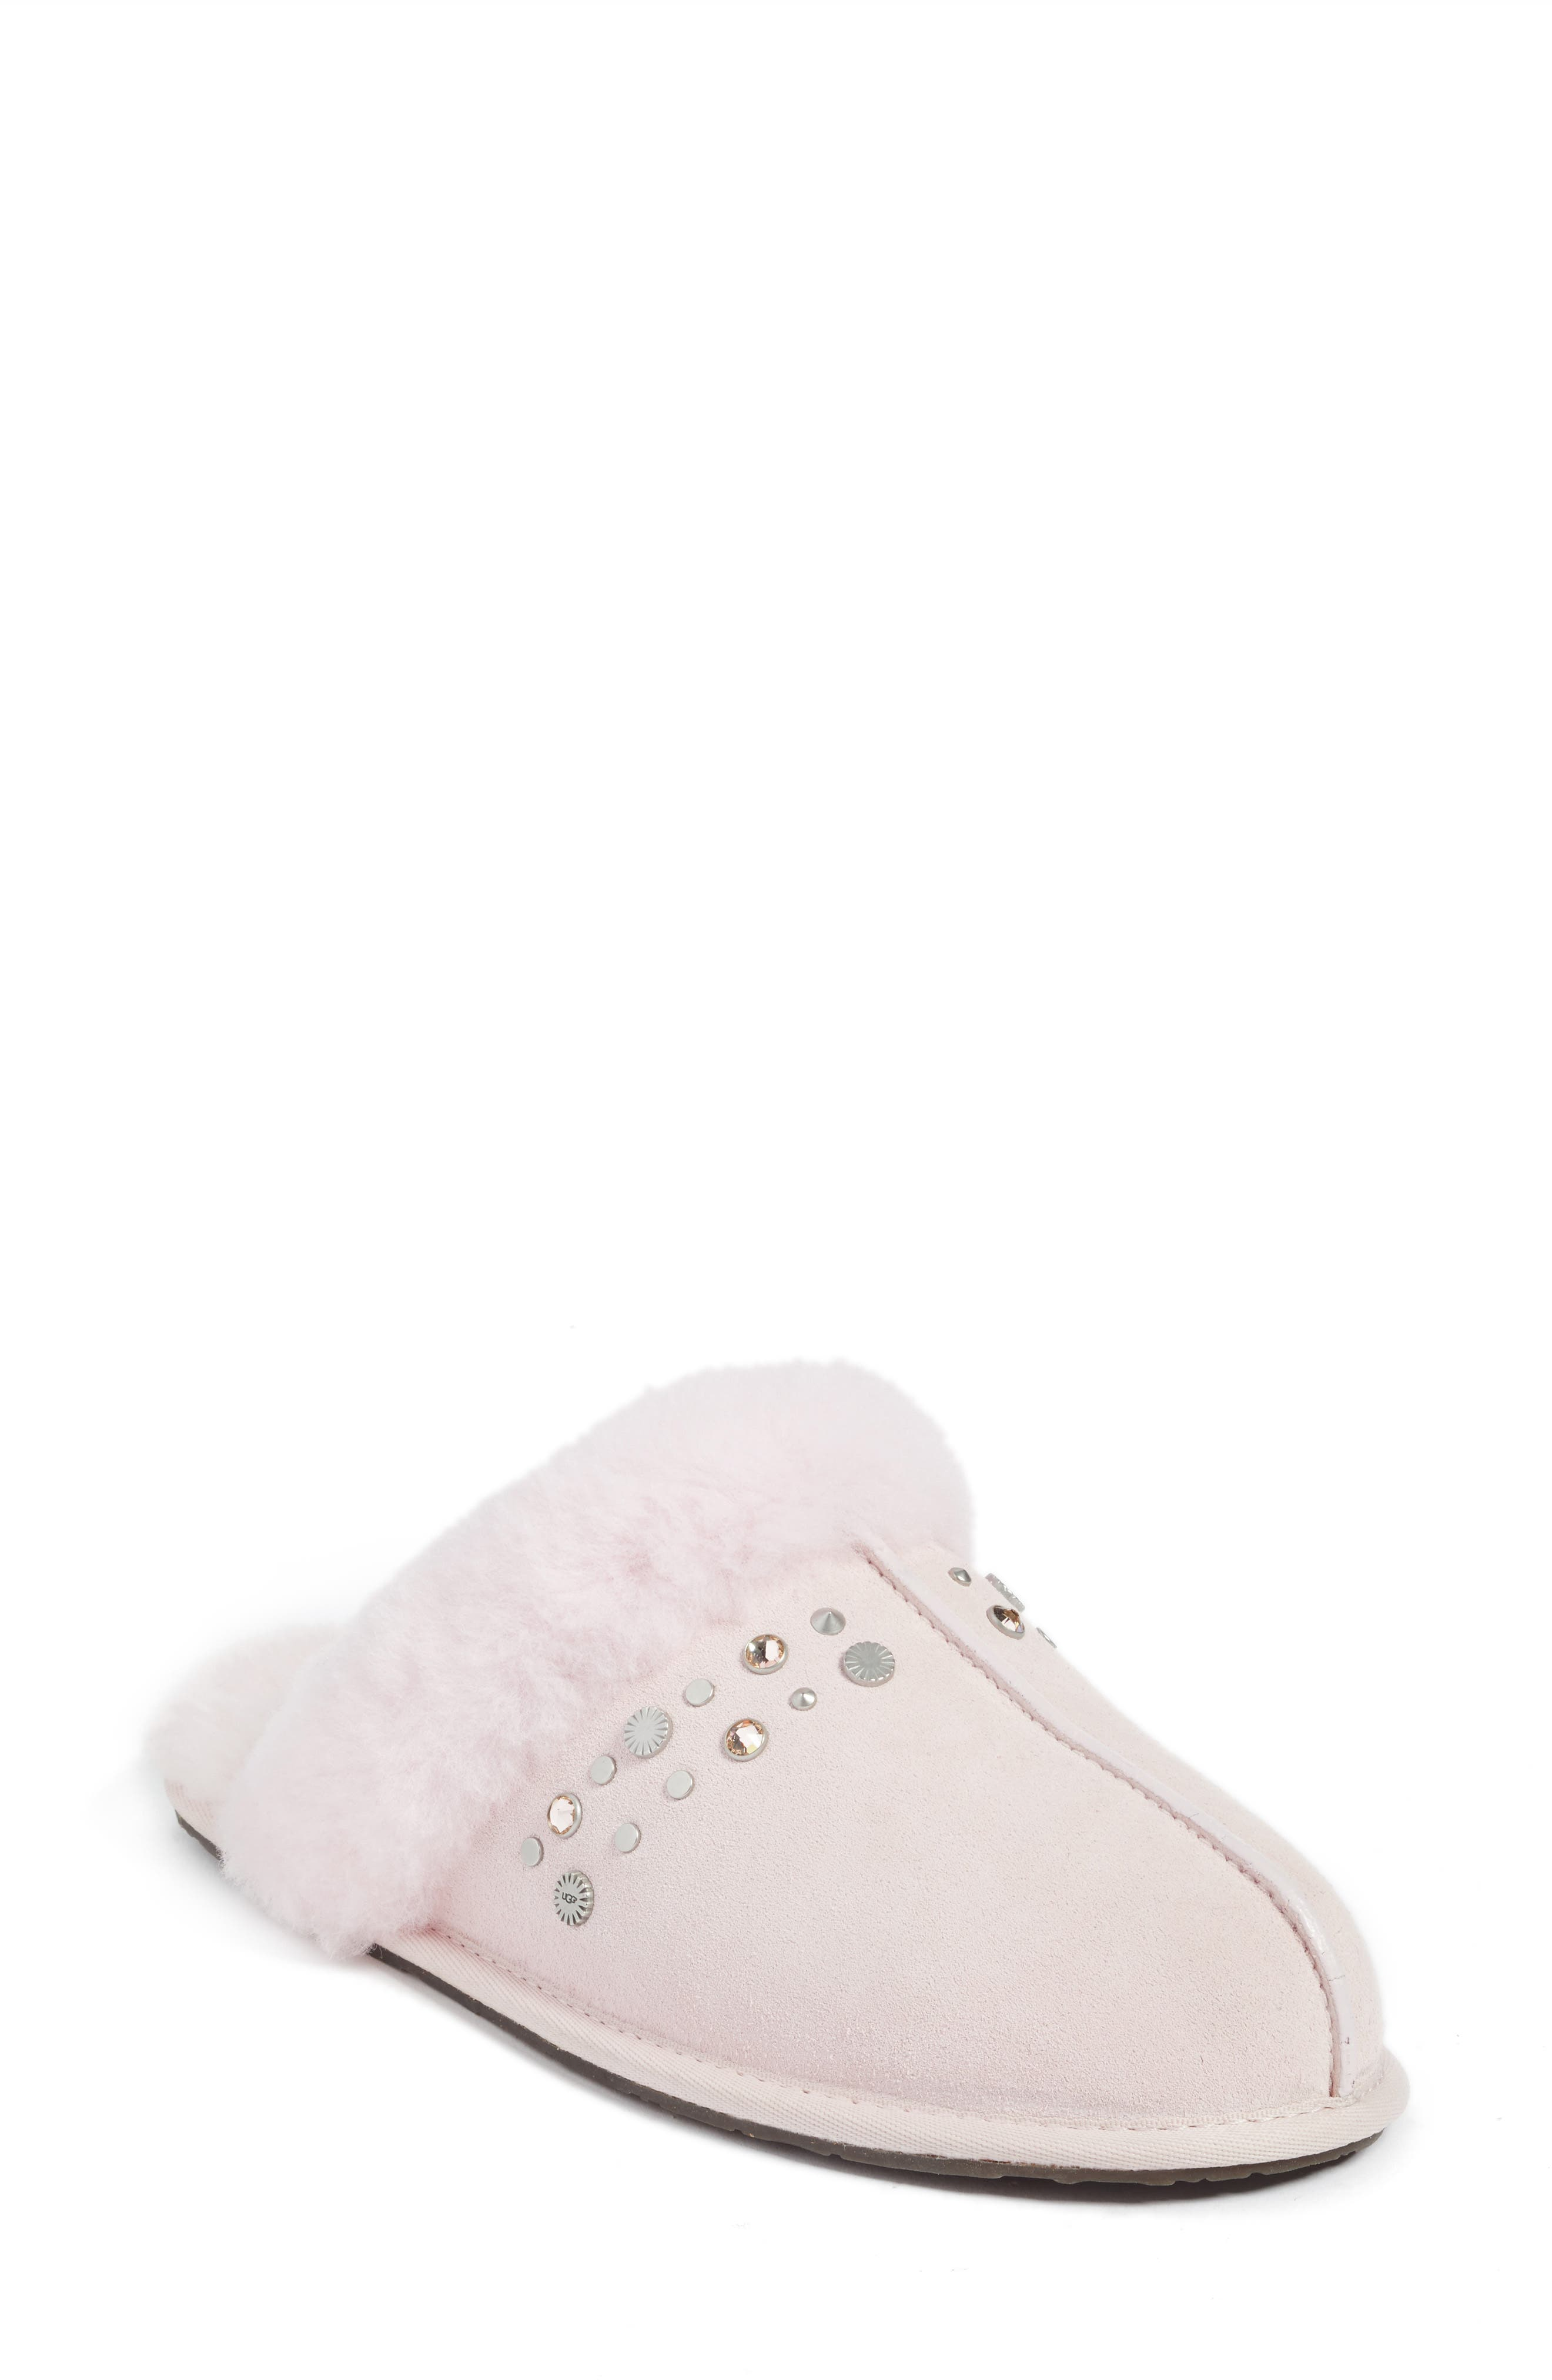 Fuzzy White and Metallic Gold Ladies Slippers - Size Large